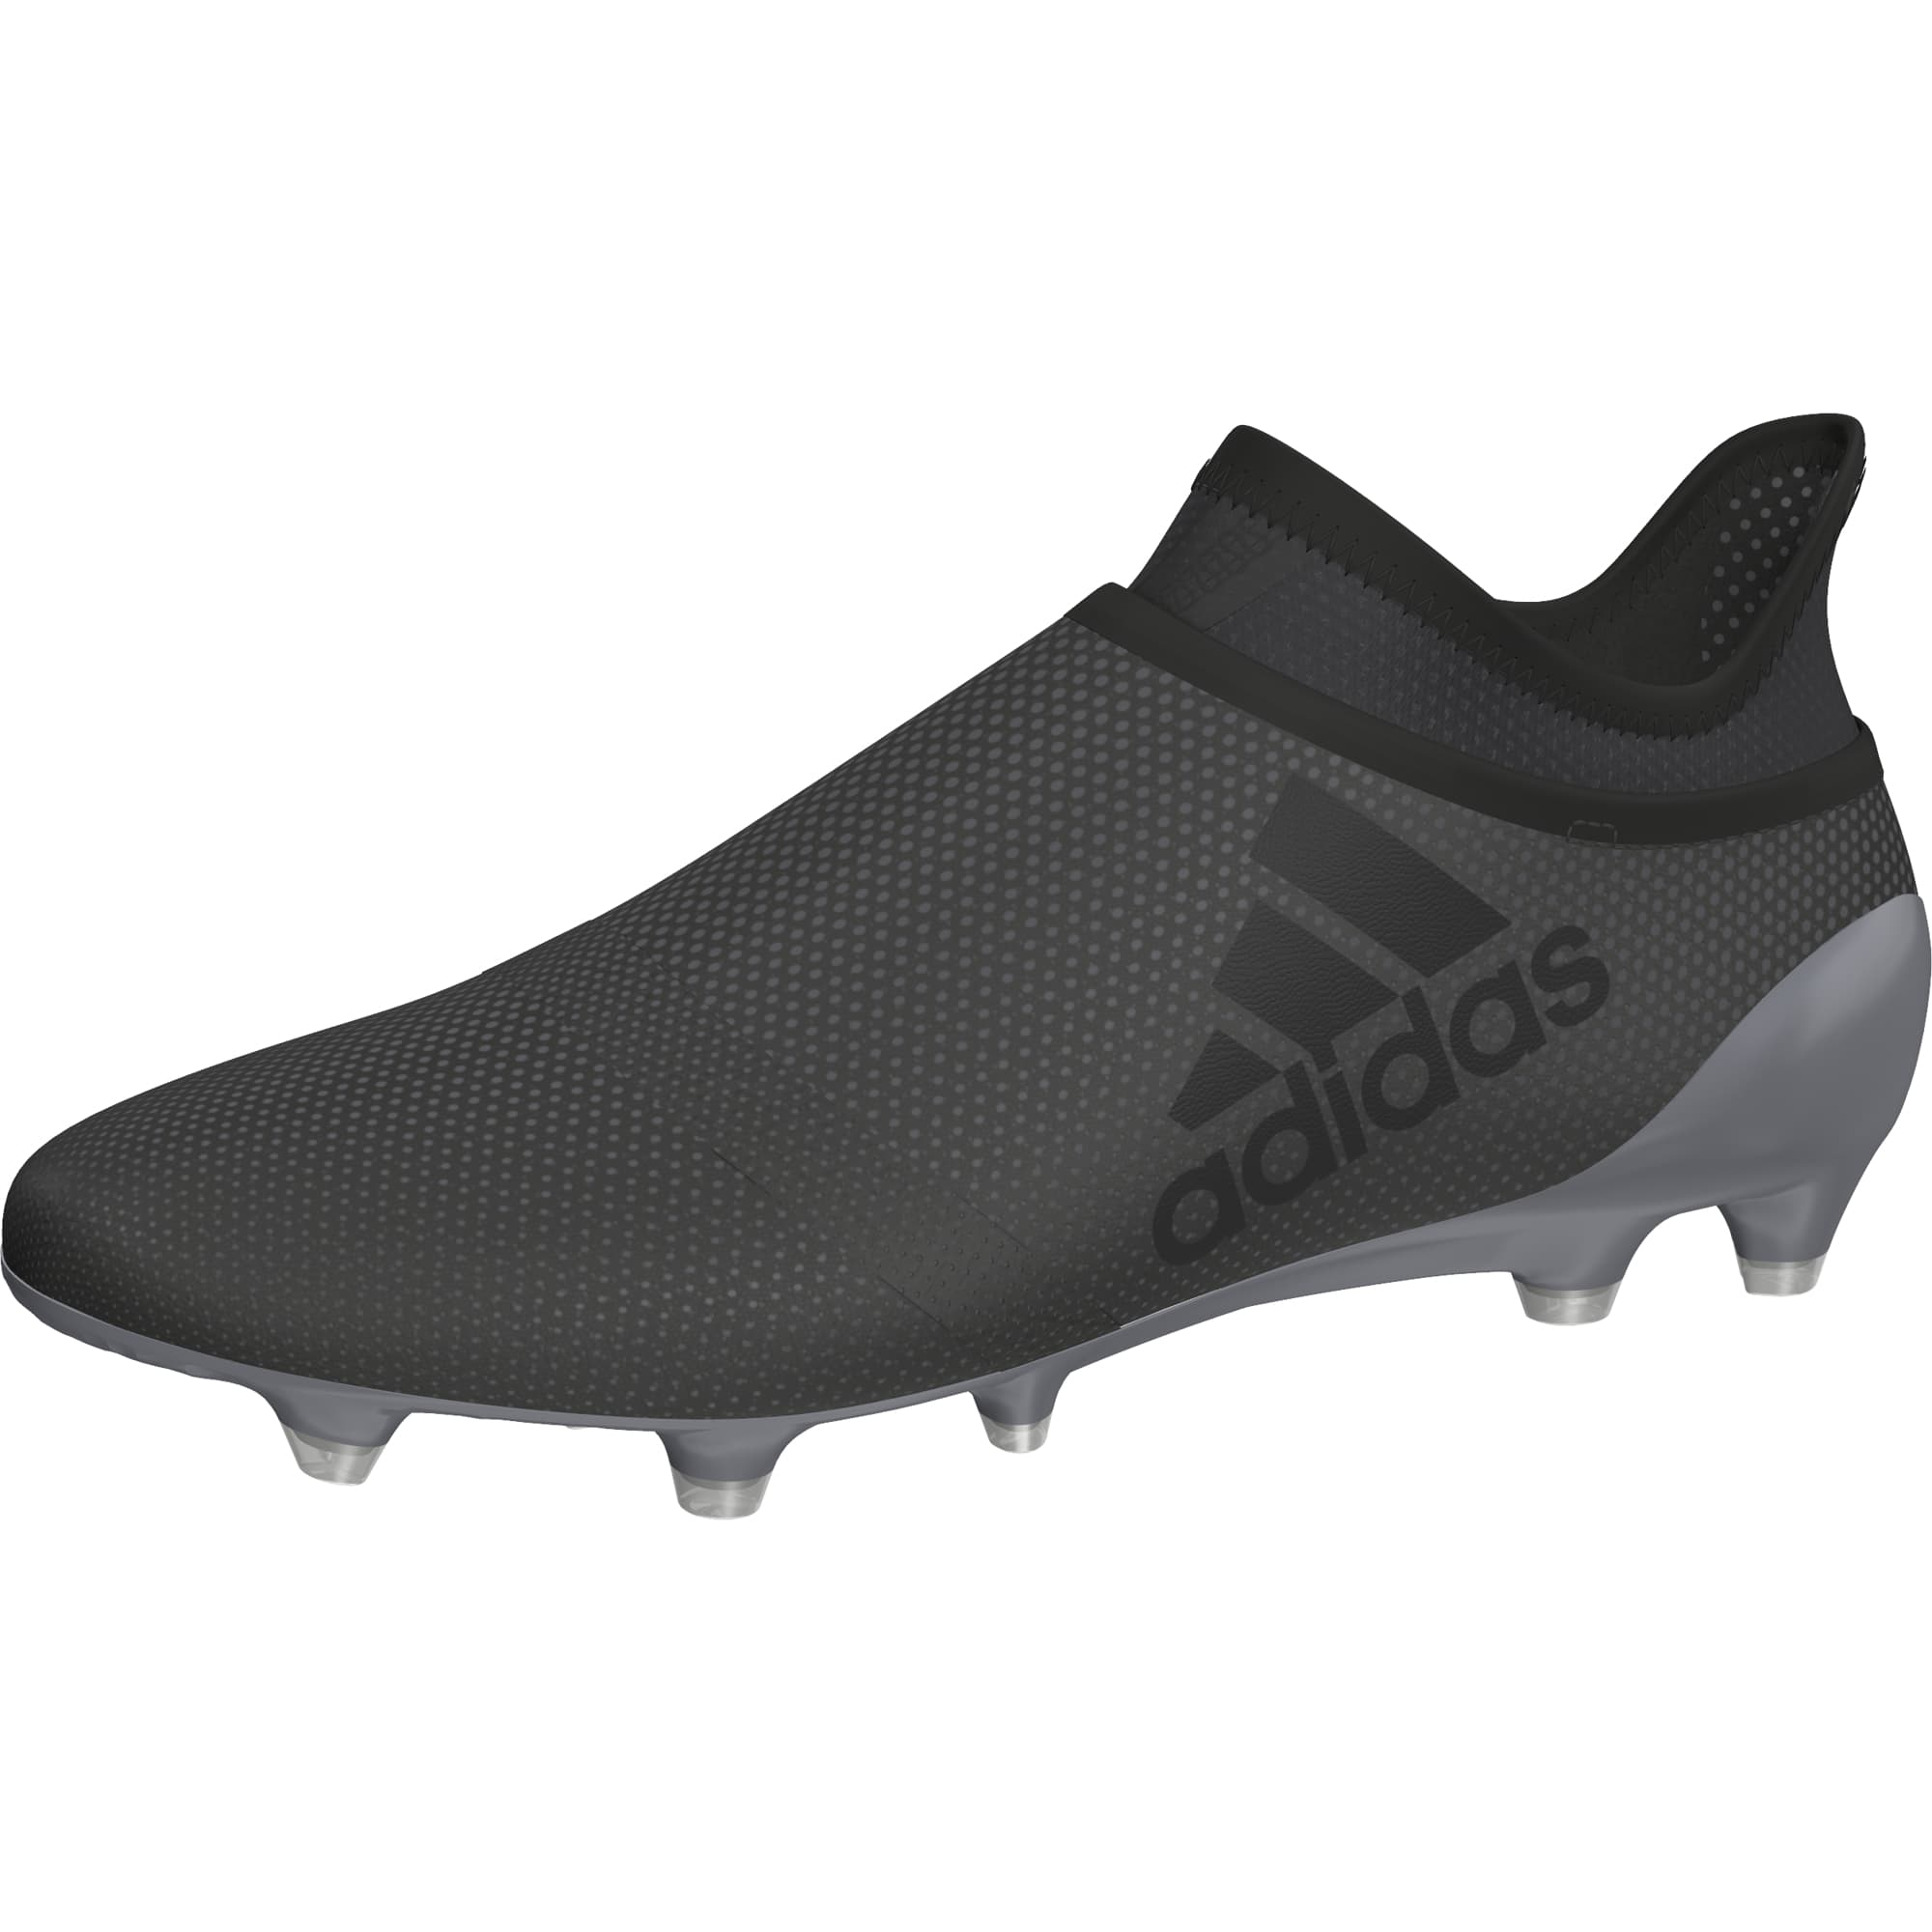 5899910a8 ... france adidas x 17 purespeed firm ground boots core black core black  super e7ae9 1e72d